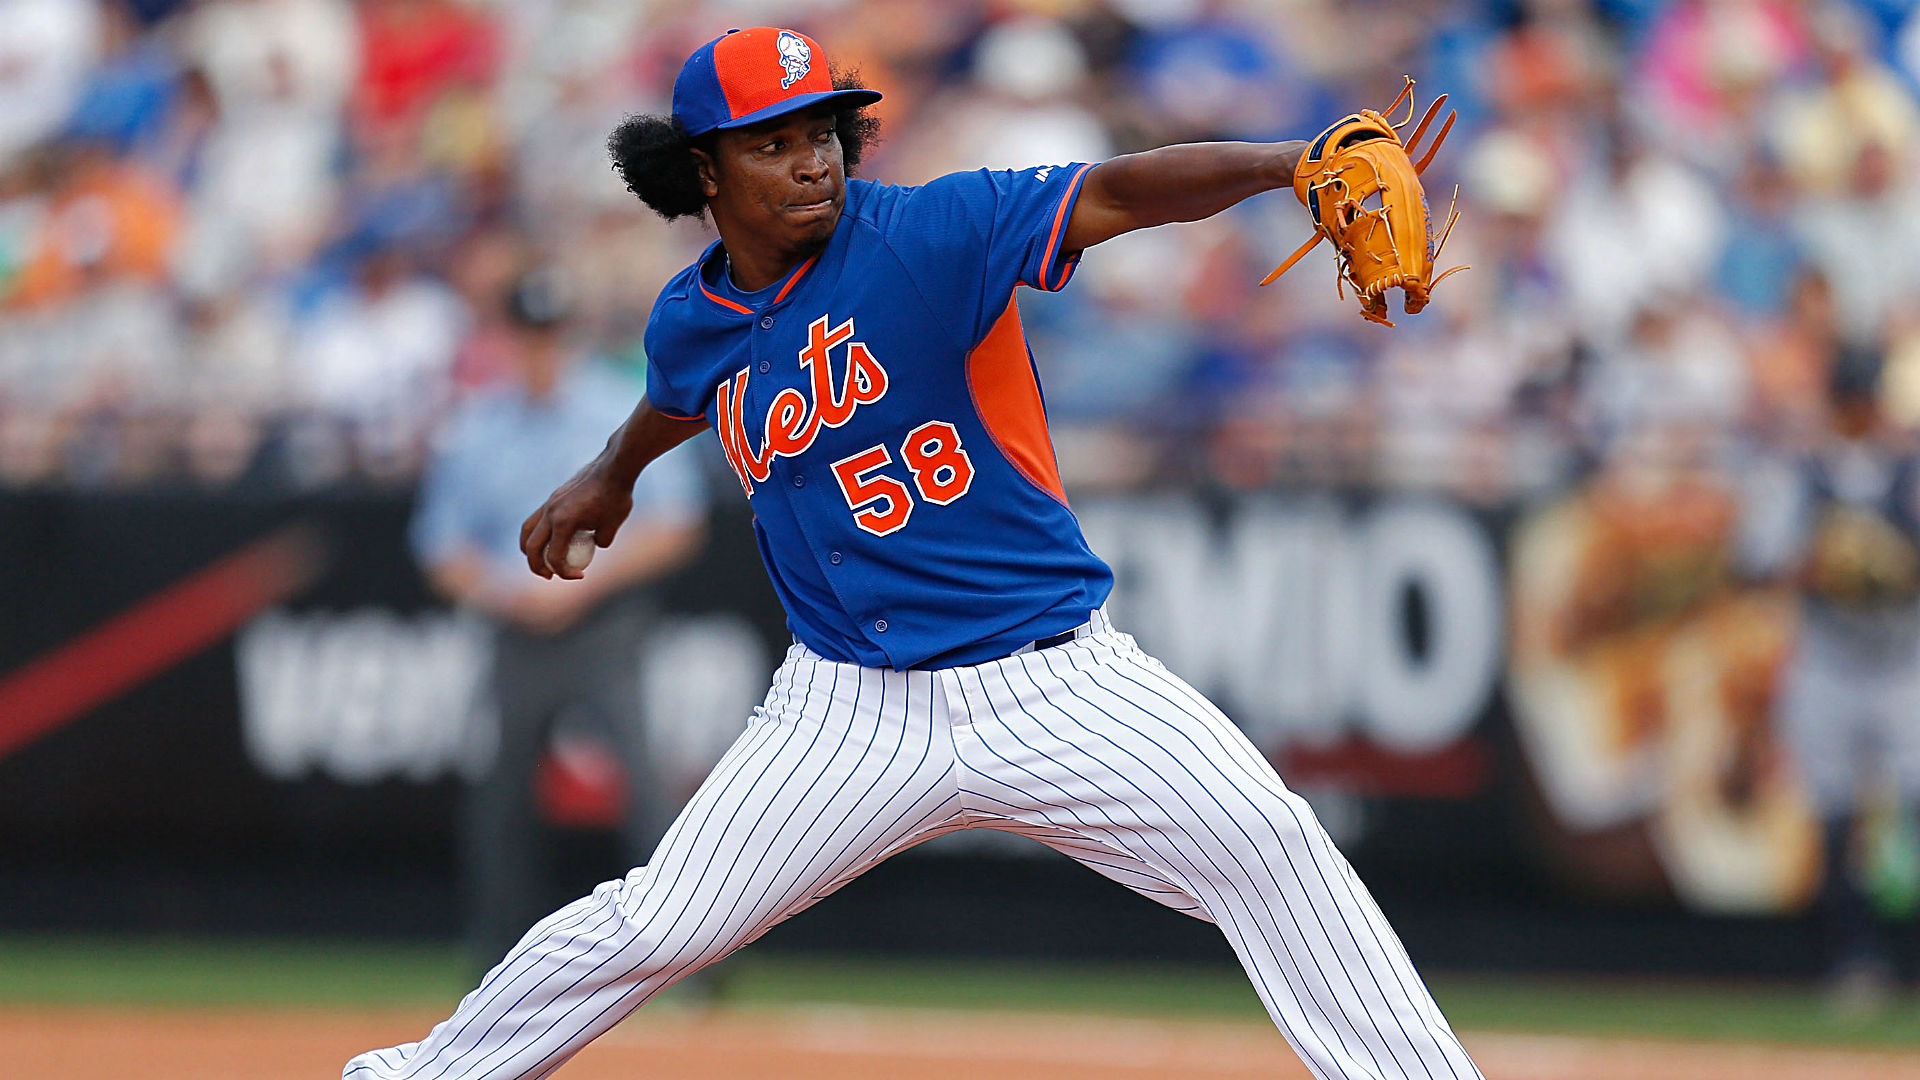 Mets reliever Jenrry Mejia suspended 162 games for second failed PED test